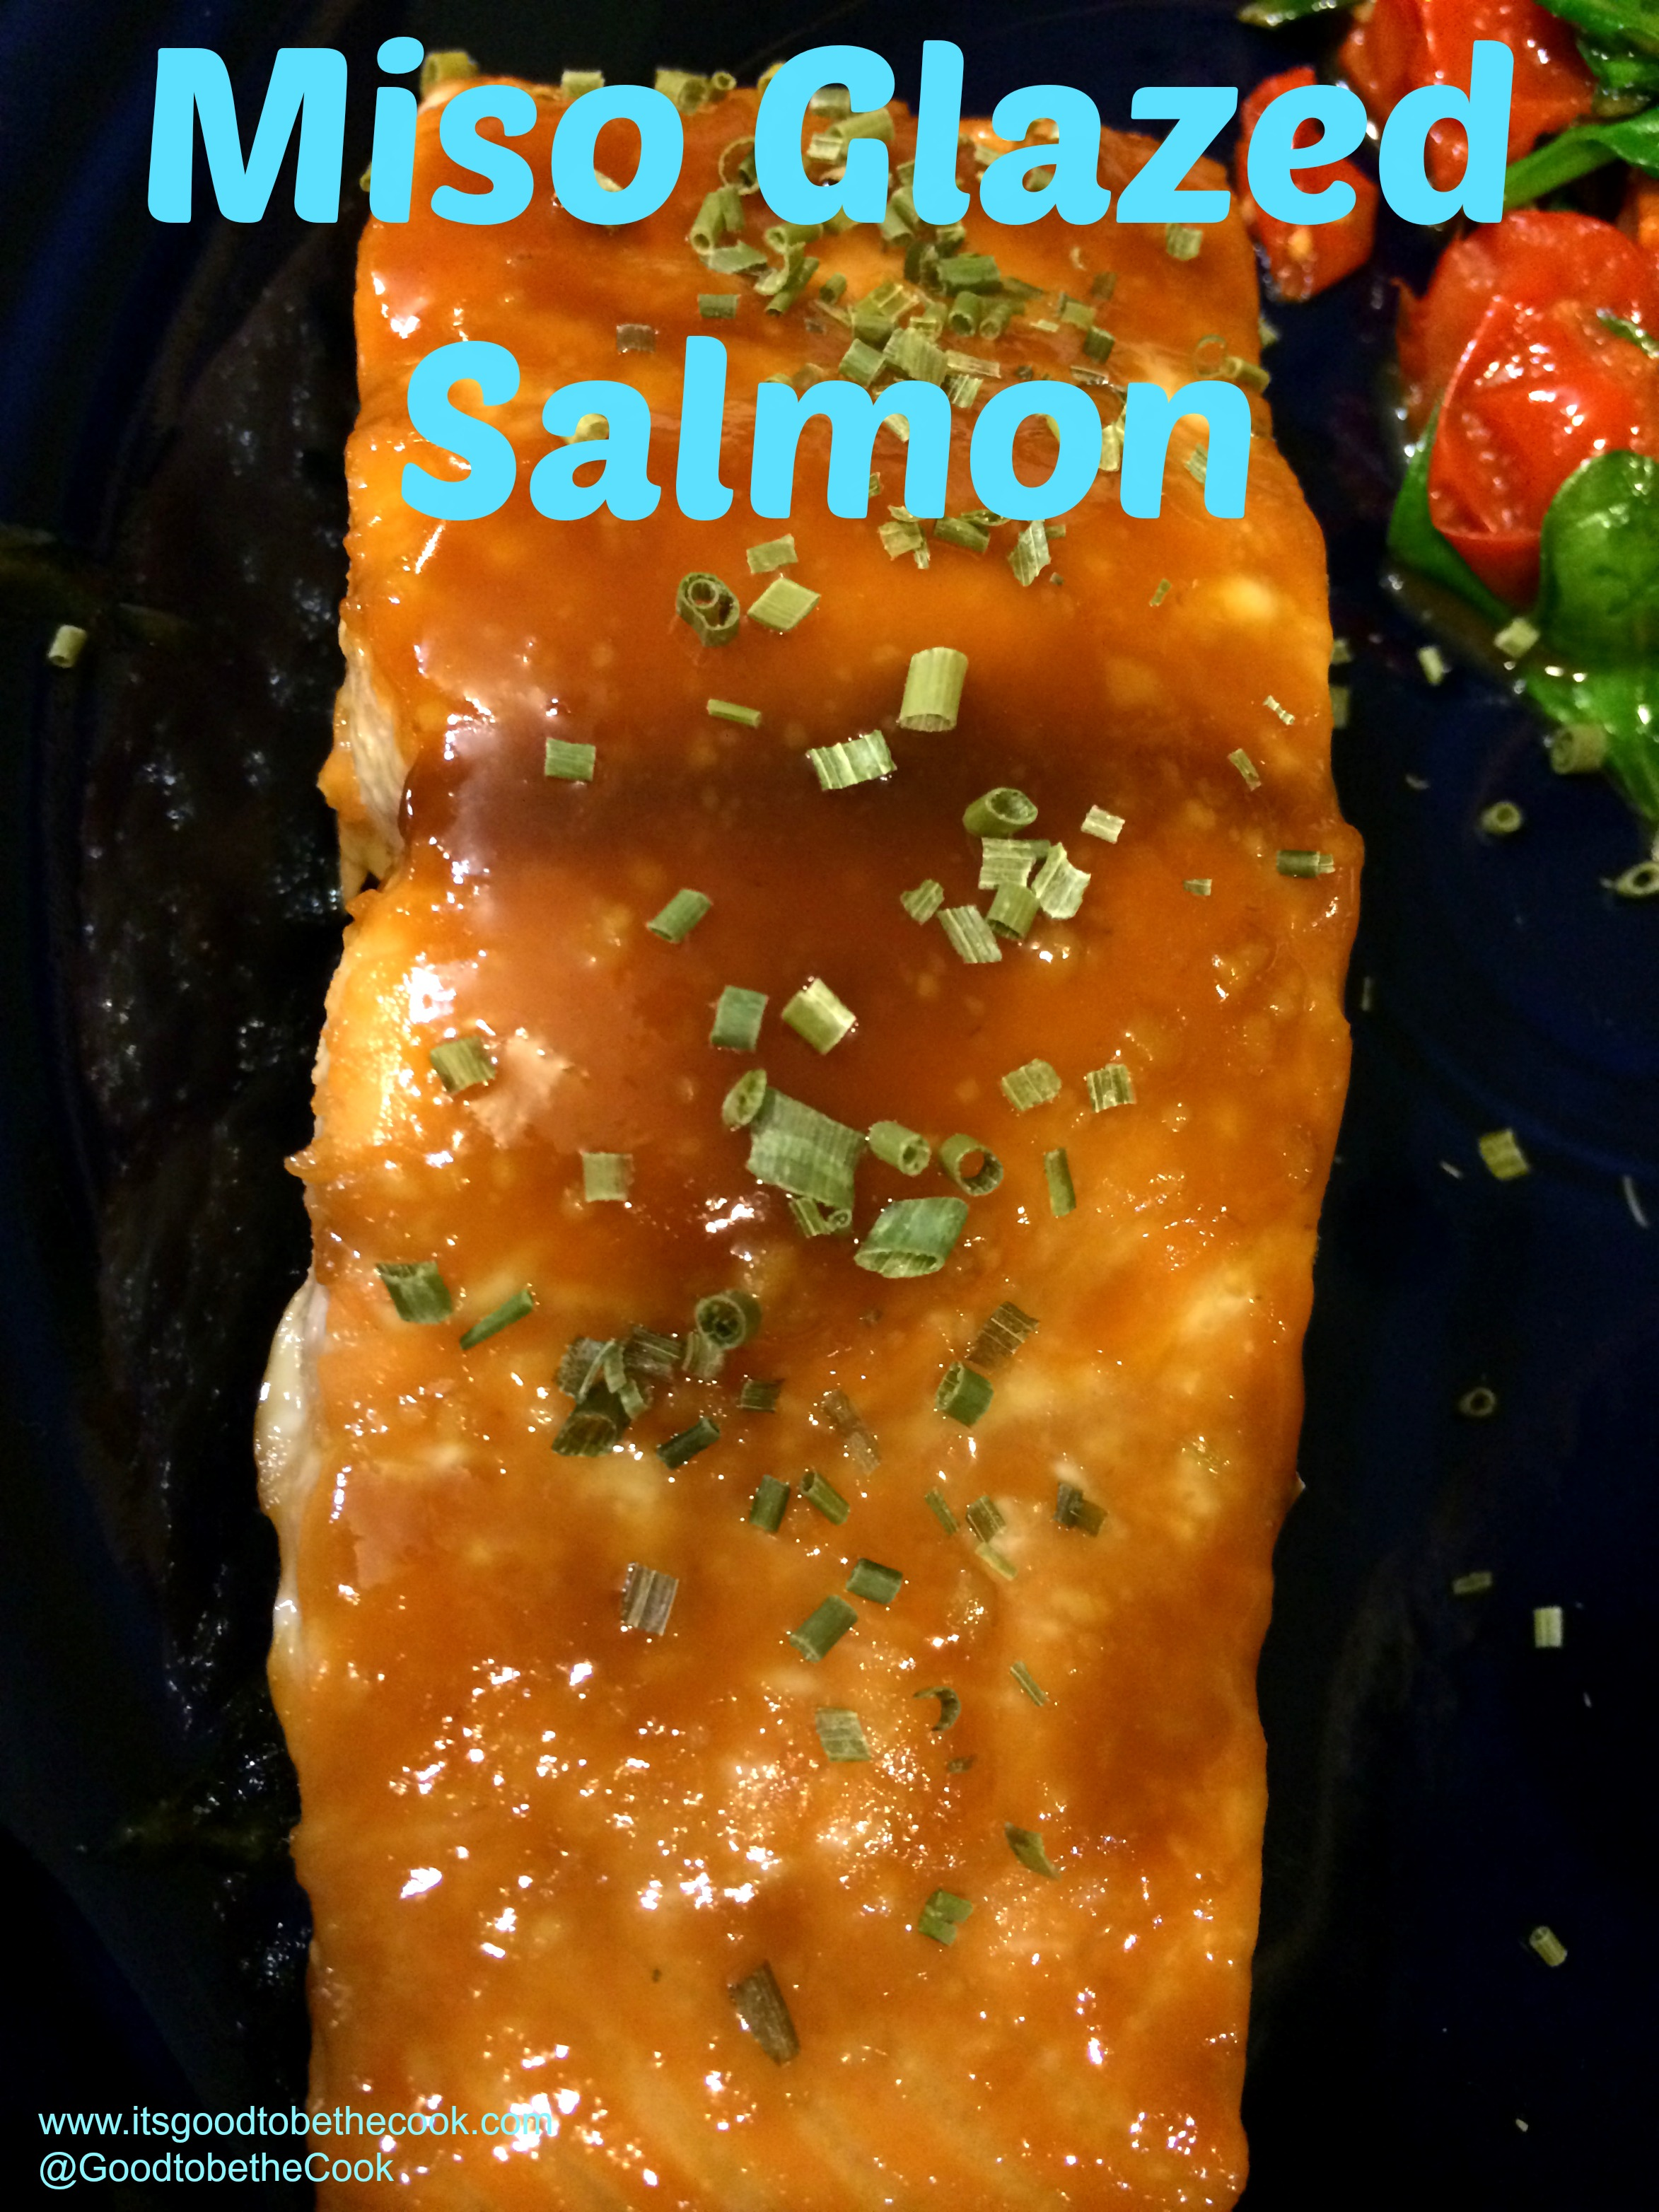 Miso Glazed Salmong Salmon It's Good To Be The Cook